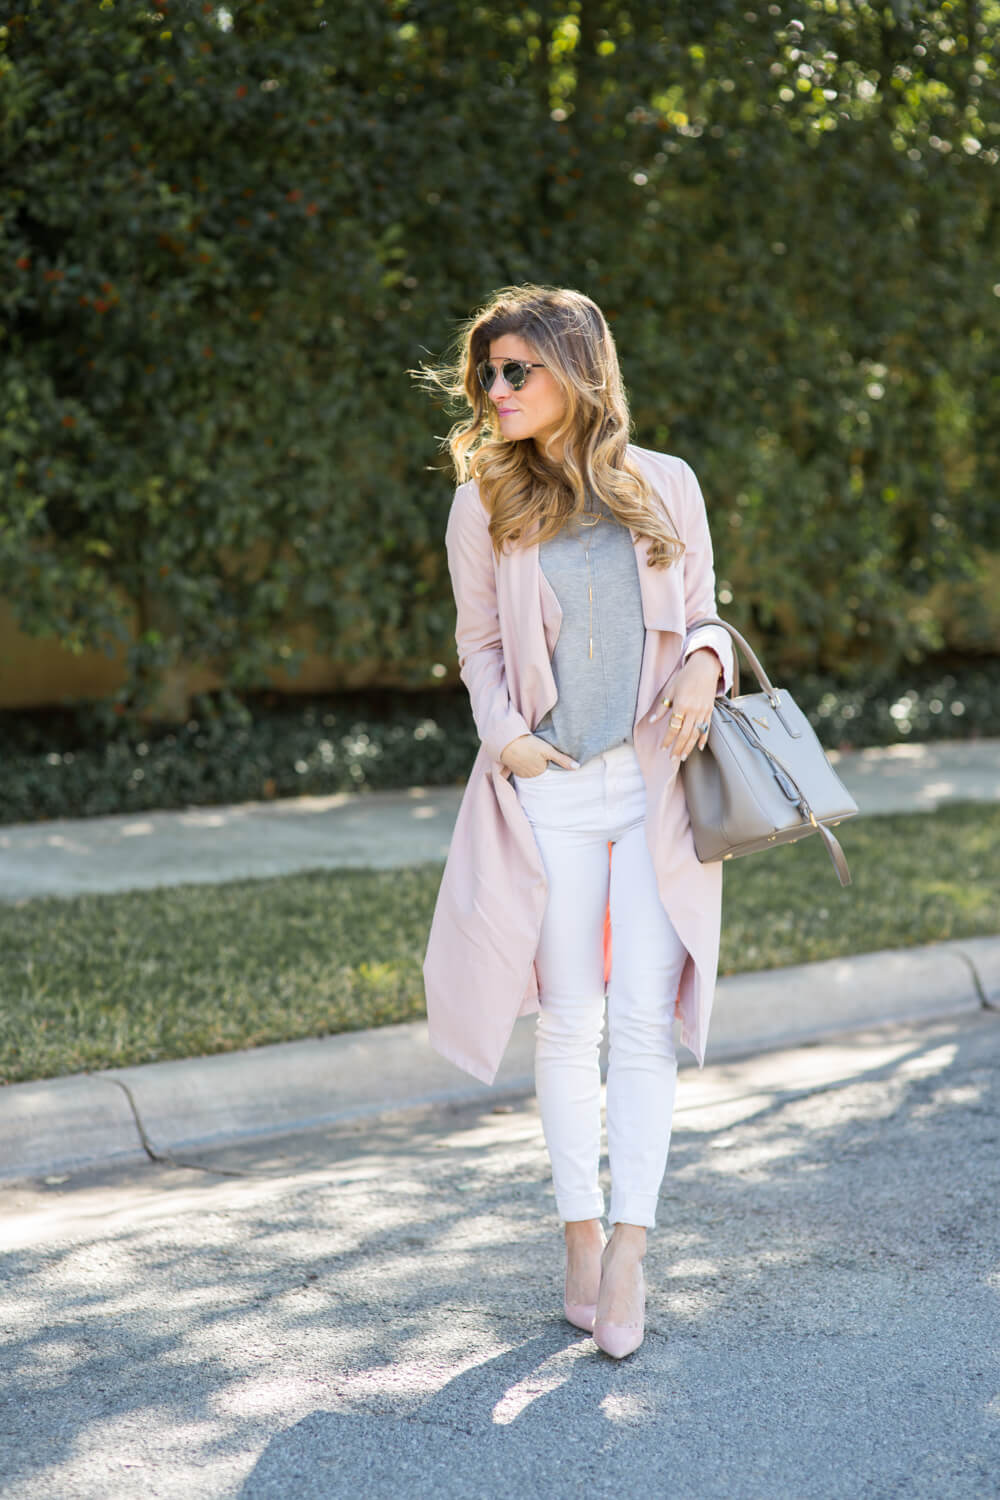 blush duster + grey sweater + white jeans + blush pumps +dior sunglasses